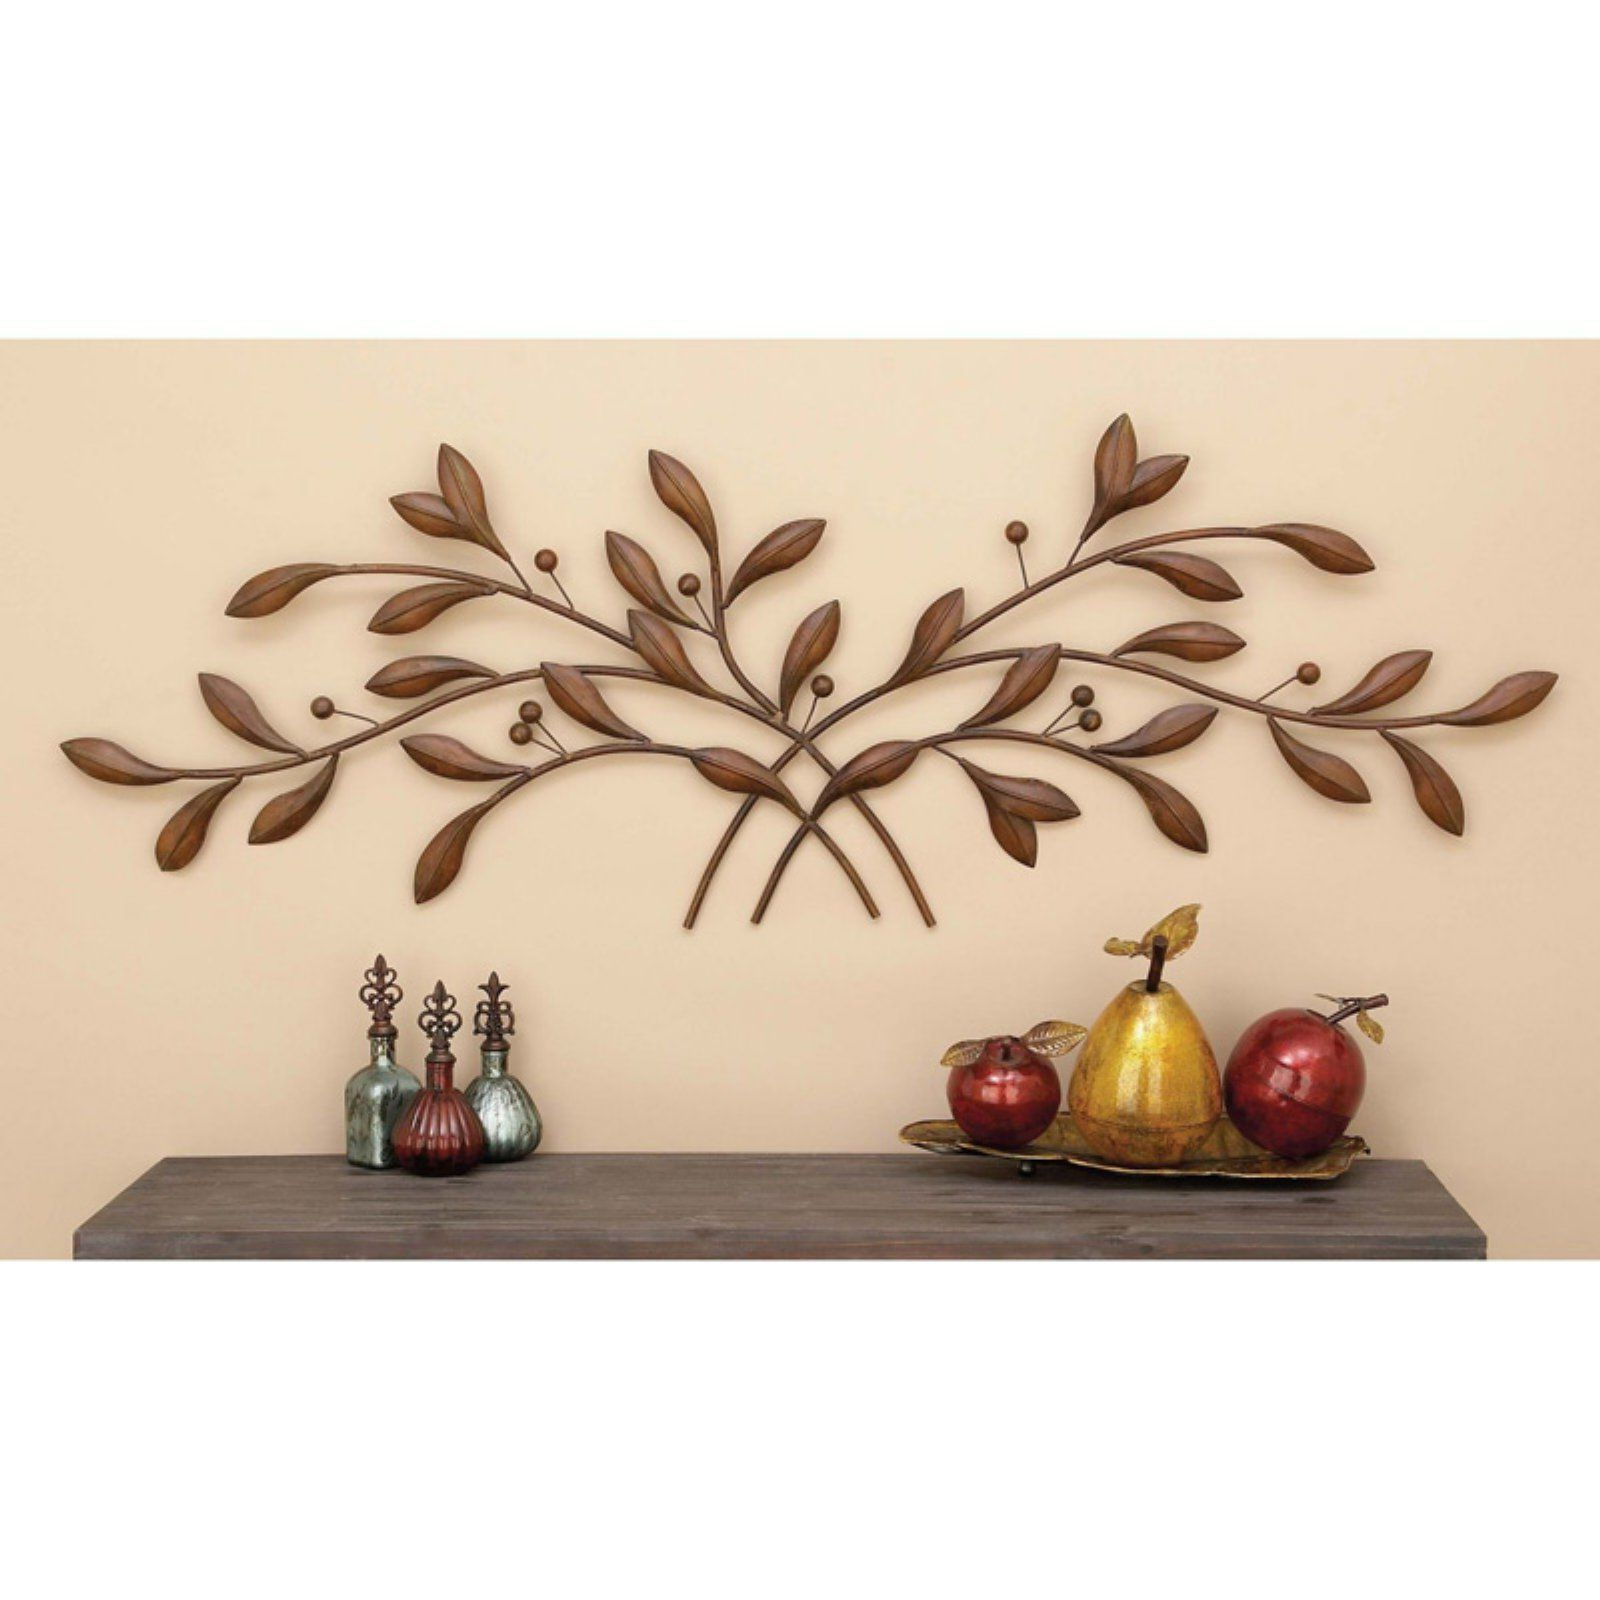 2019 Metal Leaf With Berries Wall Décor Regarding Decmode Metal Leaves And Berries Wall Sculpture In (View 5 of 20)